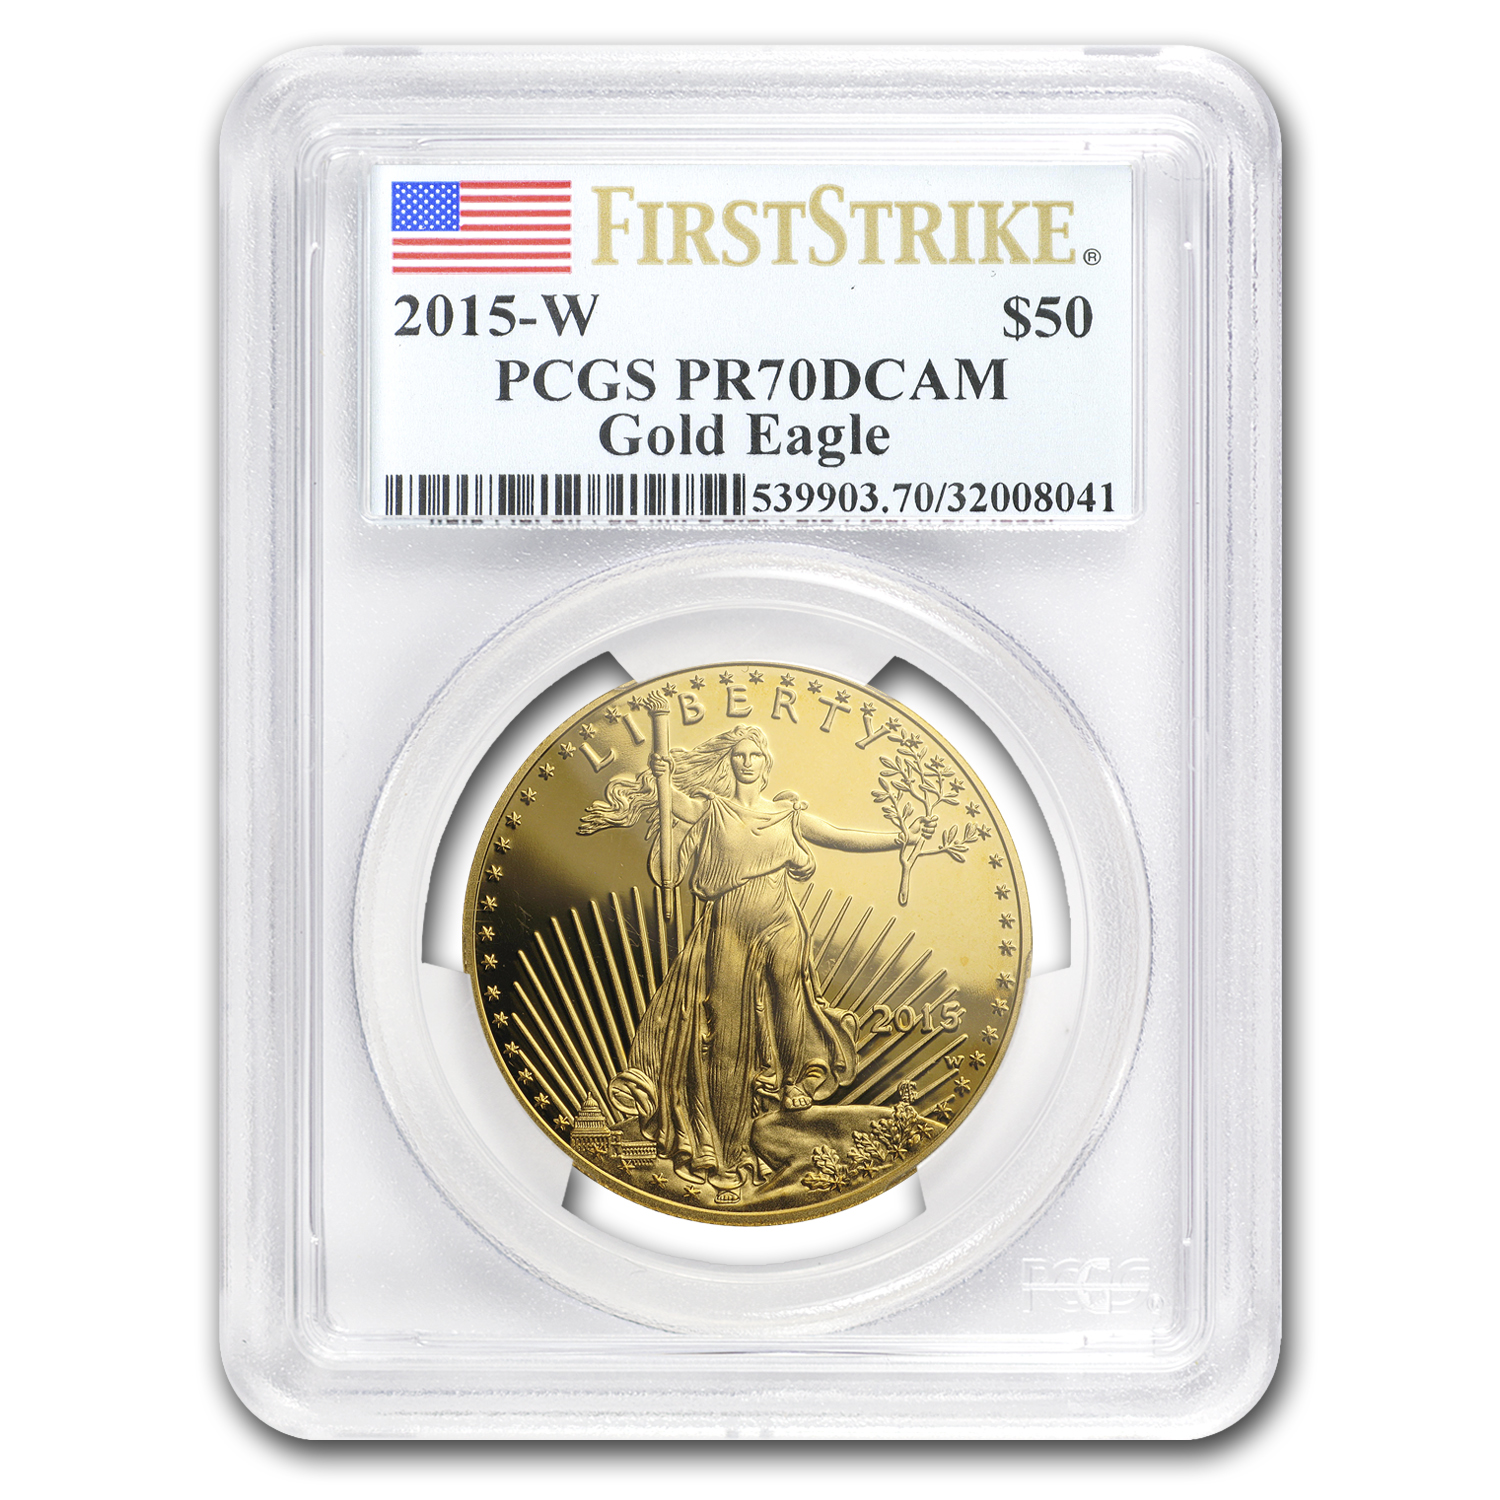 2015-W 1 oz Proof Gold American Eagle PR-70 PCGS (FS)